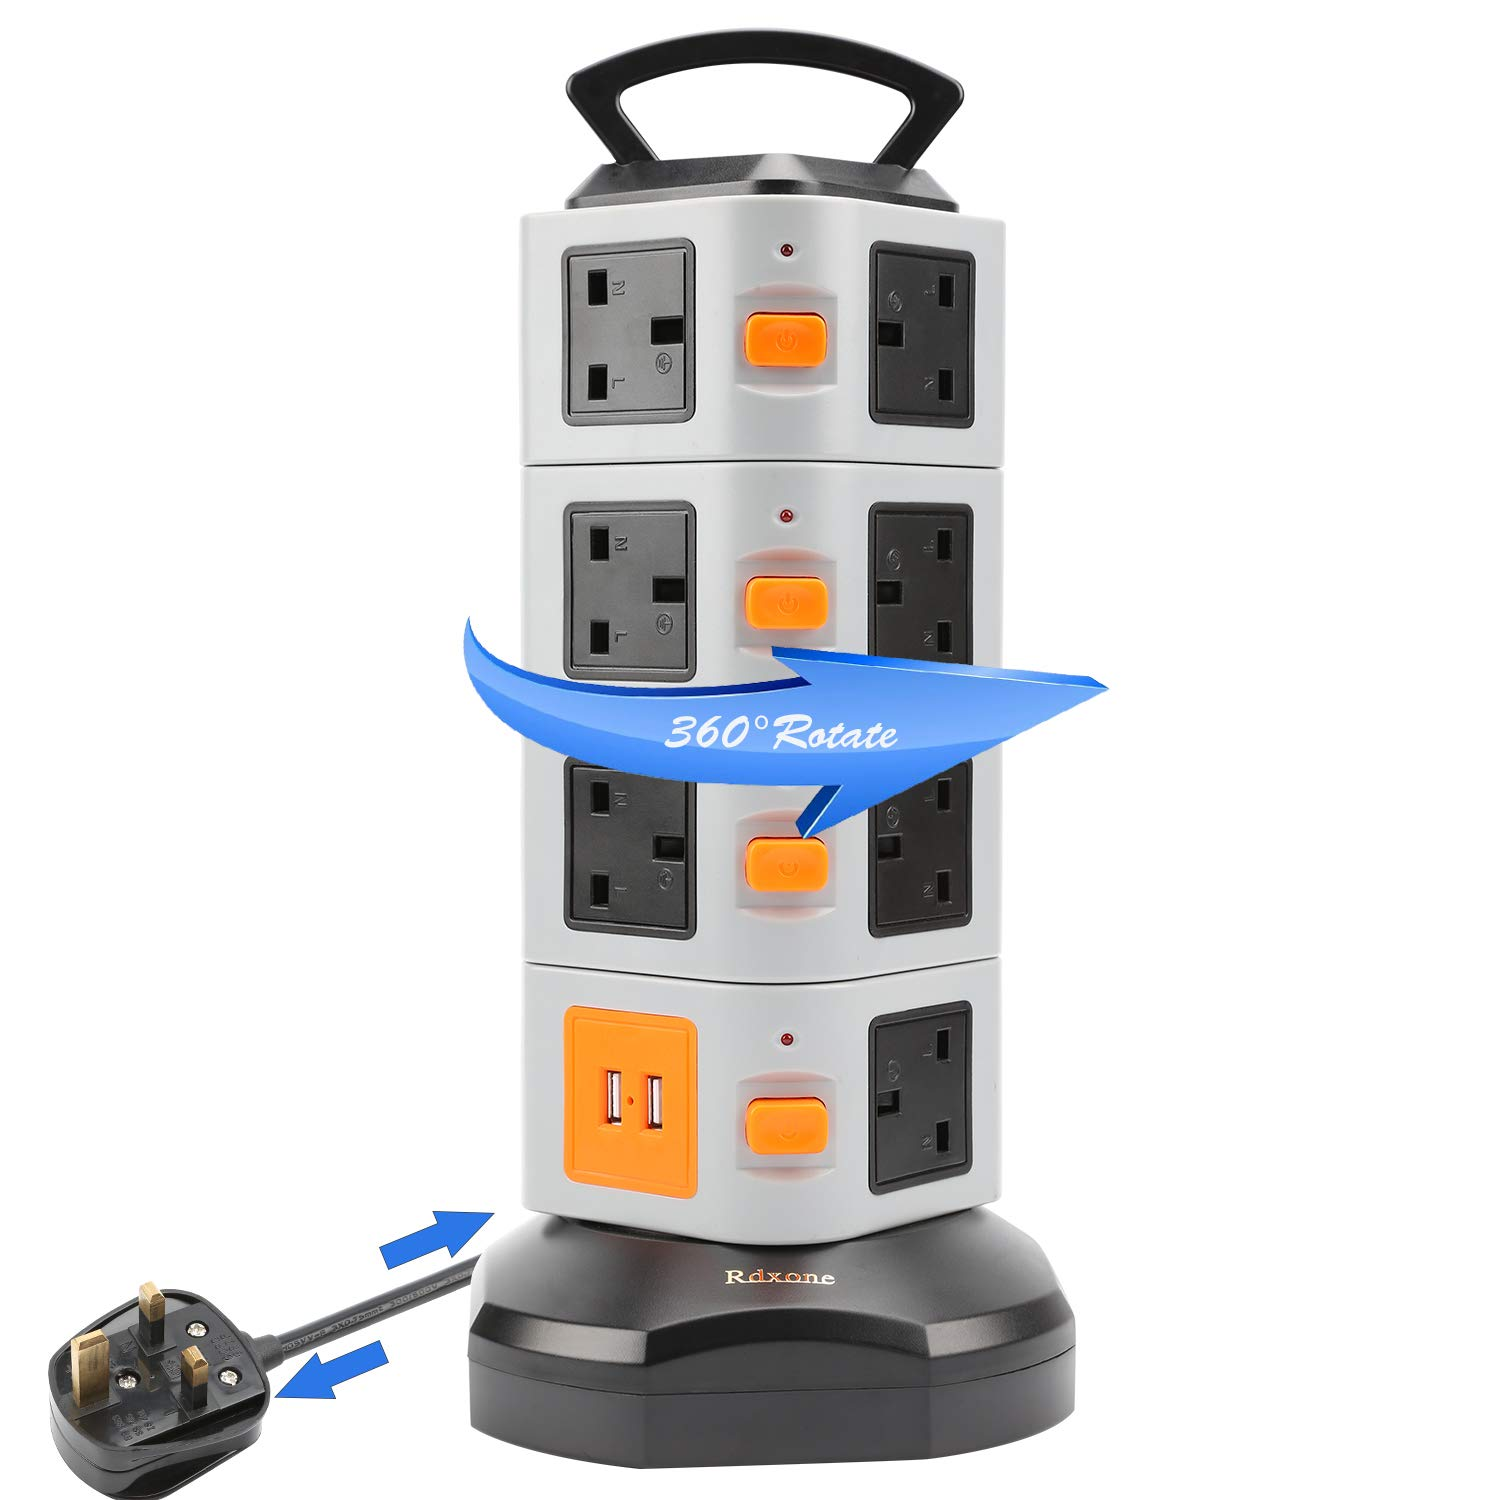 Rdxone Retractable Extention Lead Outlets Sockets 1.8M/5.9ft Extention Cord 11 Way Outlets with 2 USB Ports Overload Protection Seperated Swtiches Control